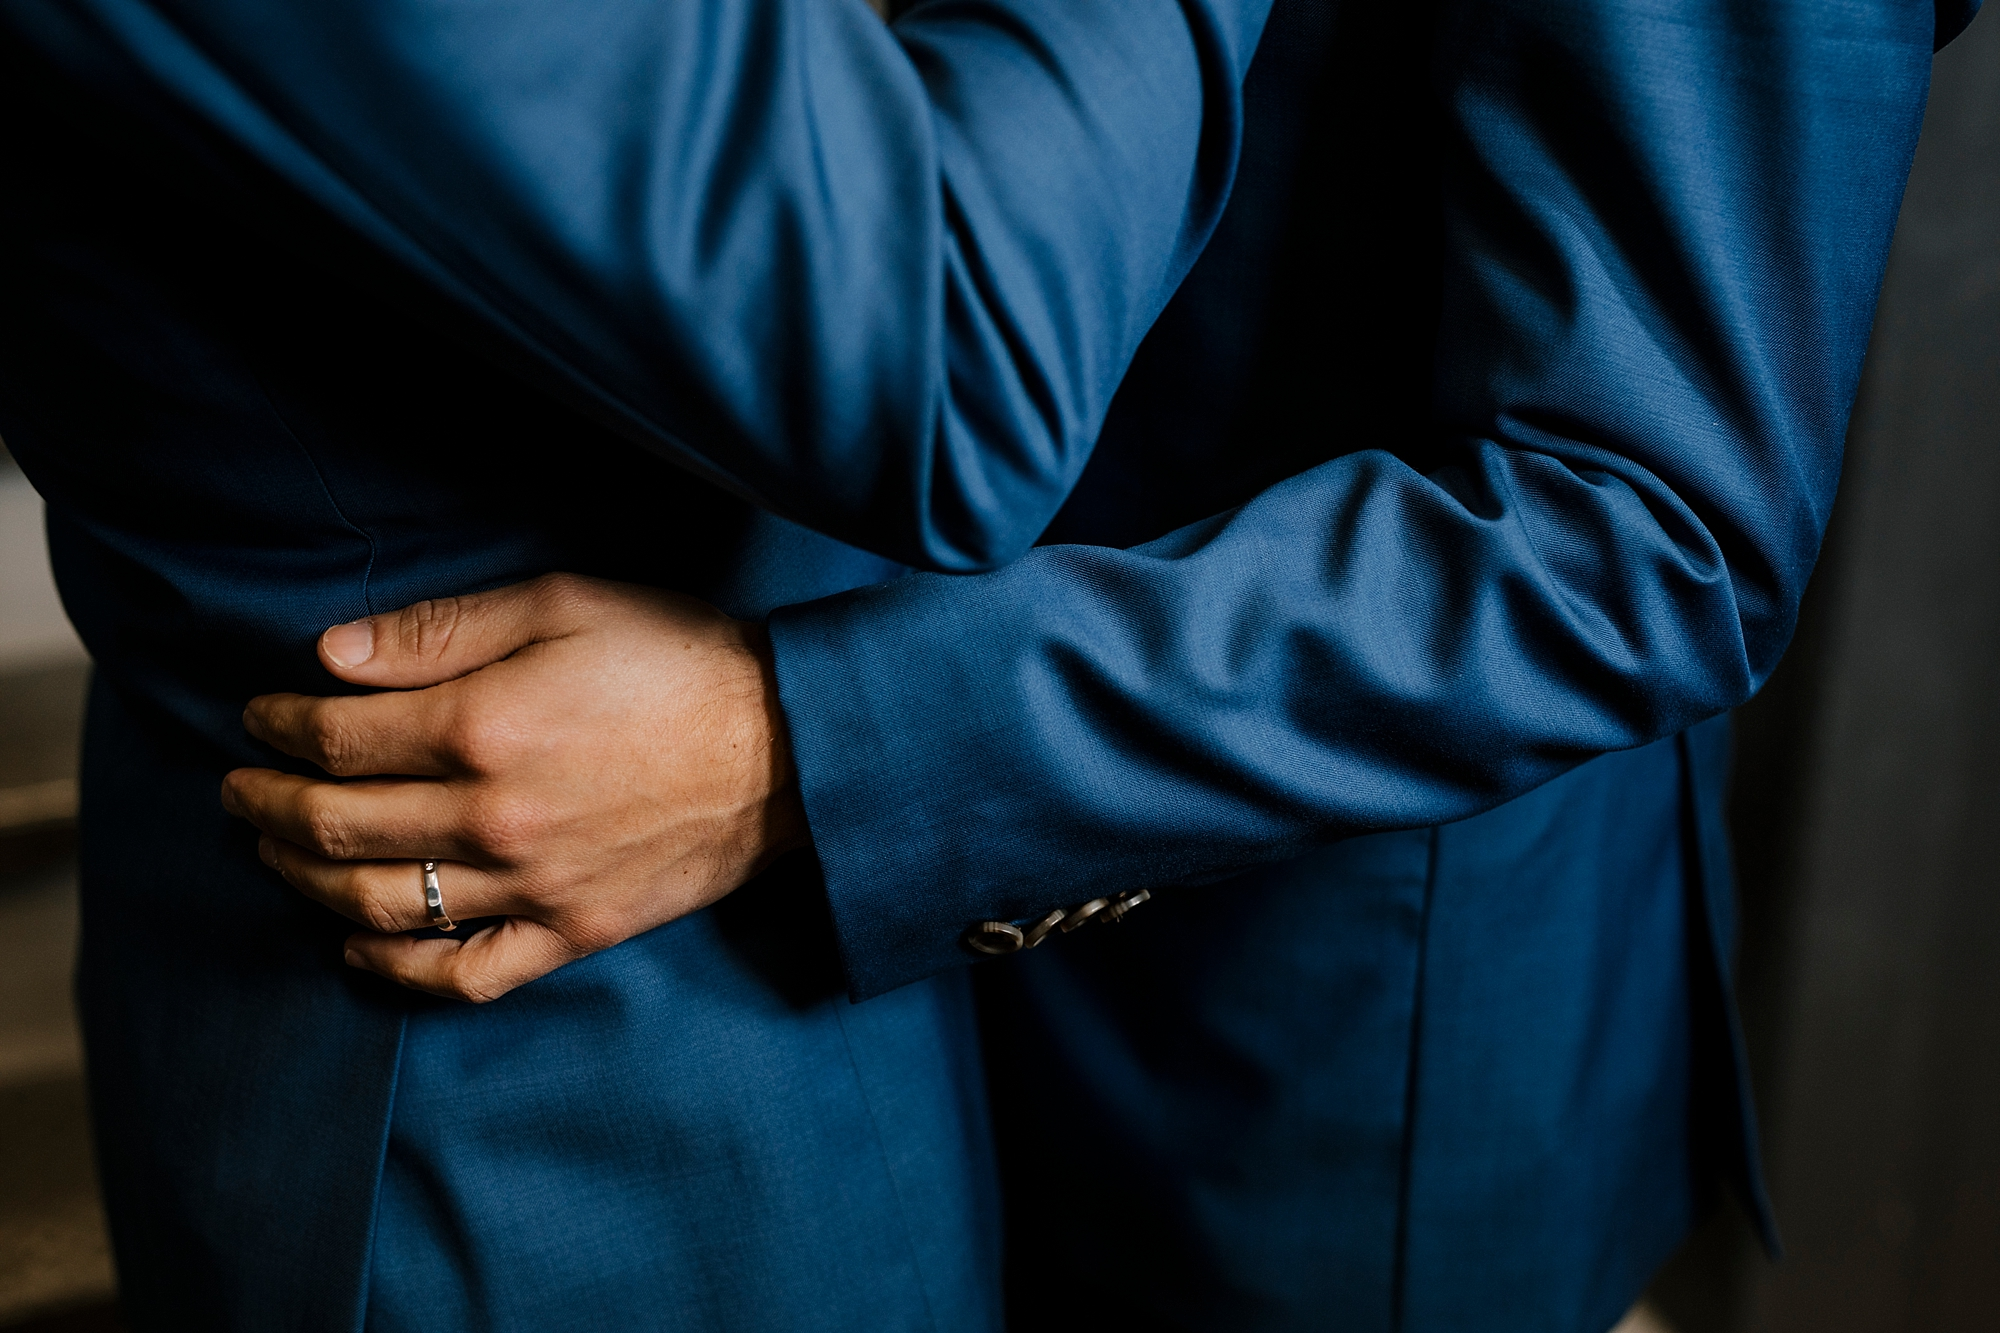 Joe_Mac_Creative_Philadelphia_Philly_LGBT_Gay_Engagement_Wedding_Photography__0106.jpg